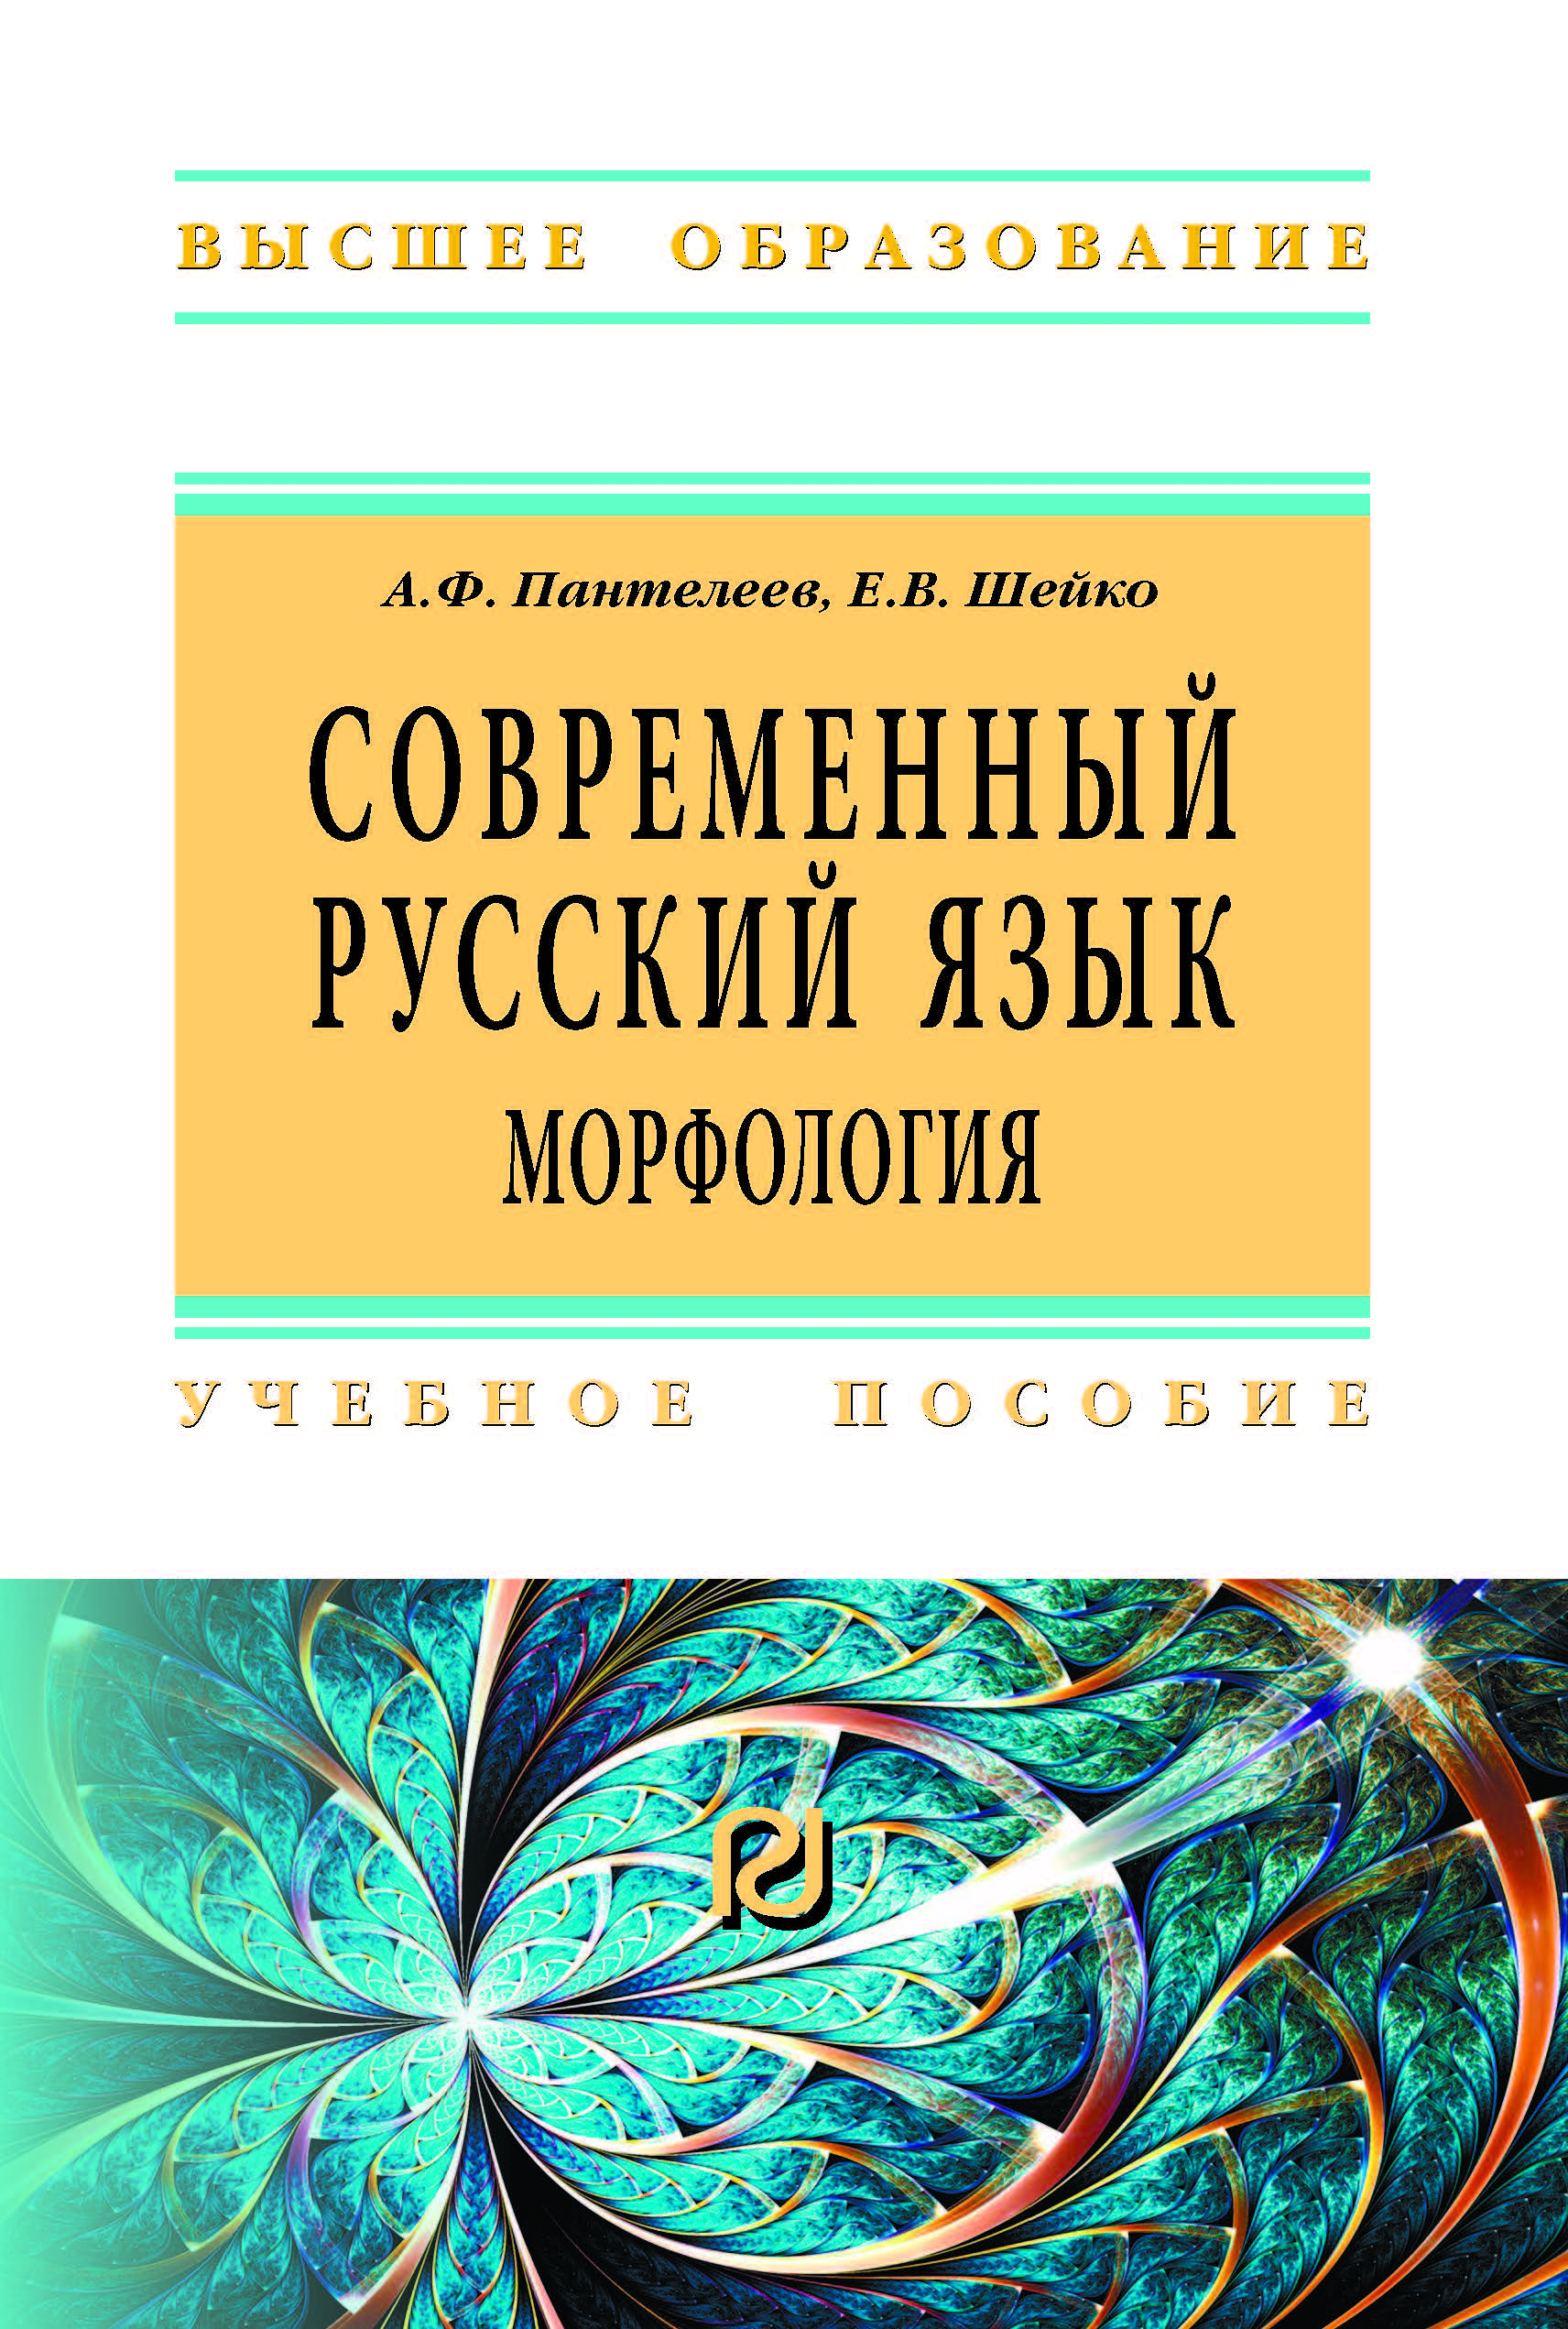 Modern Russian language: Morphology